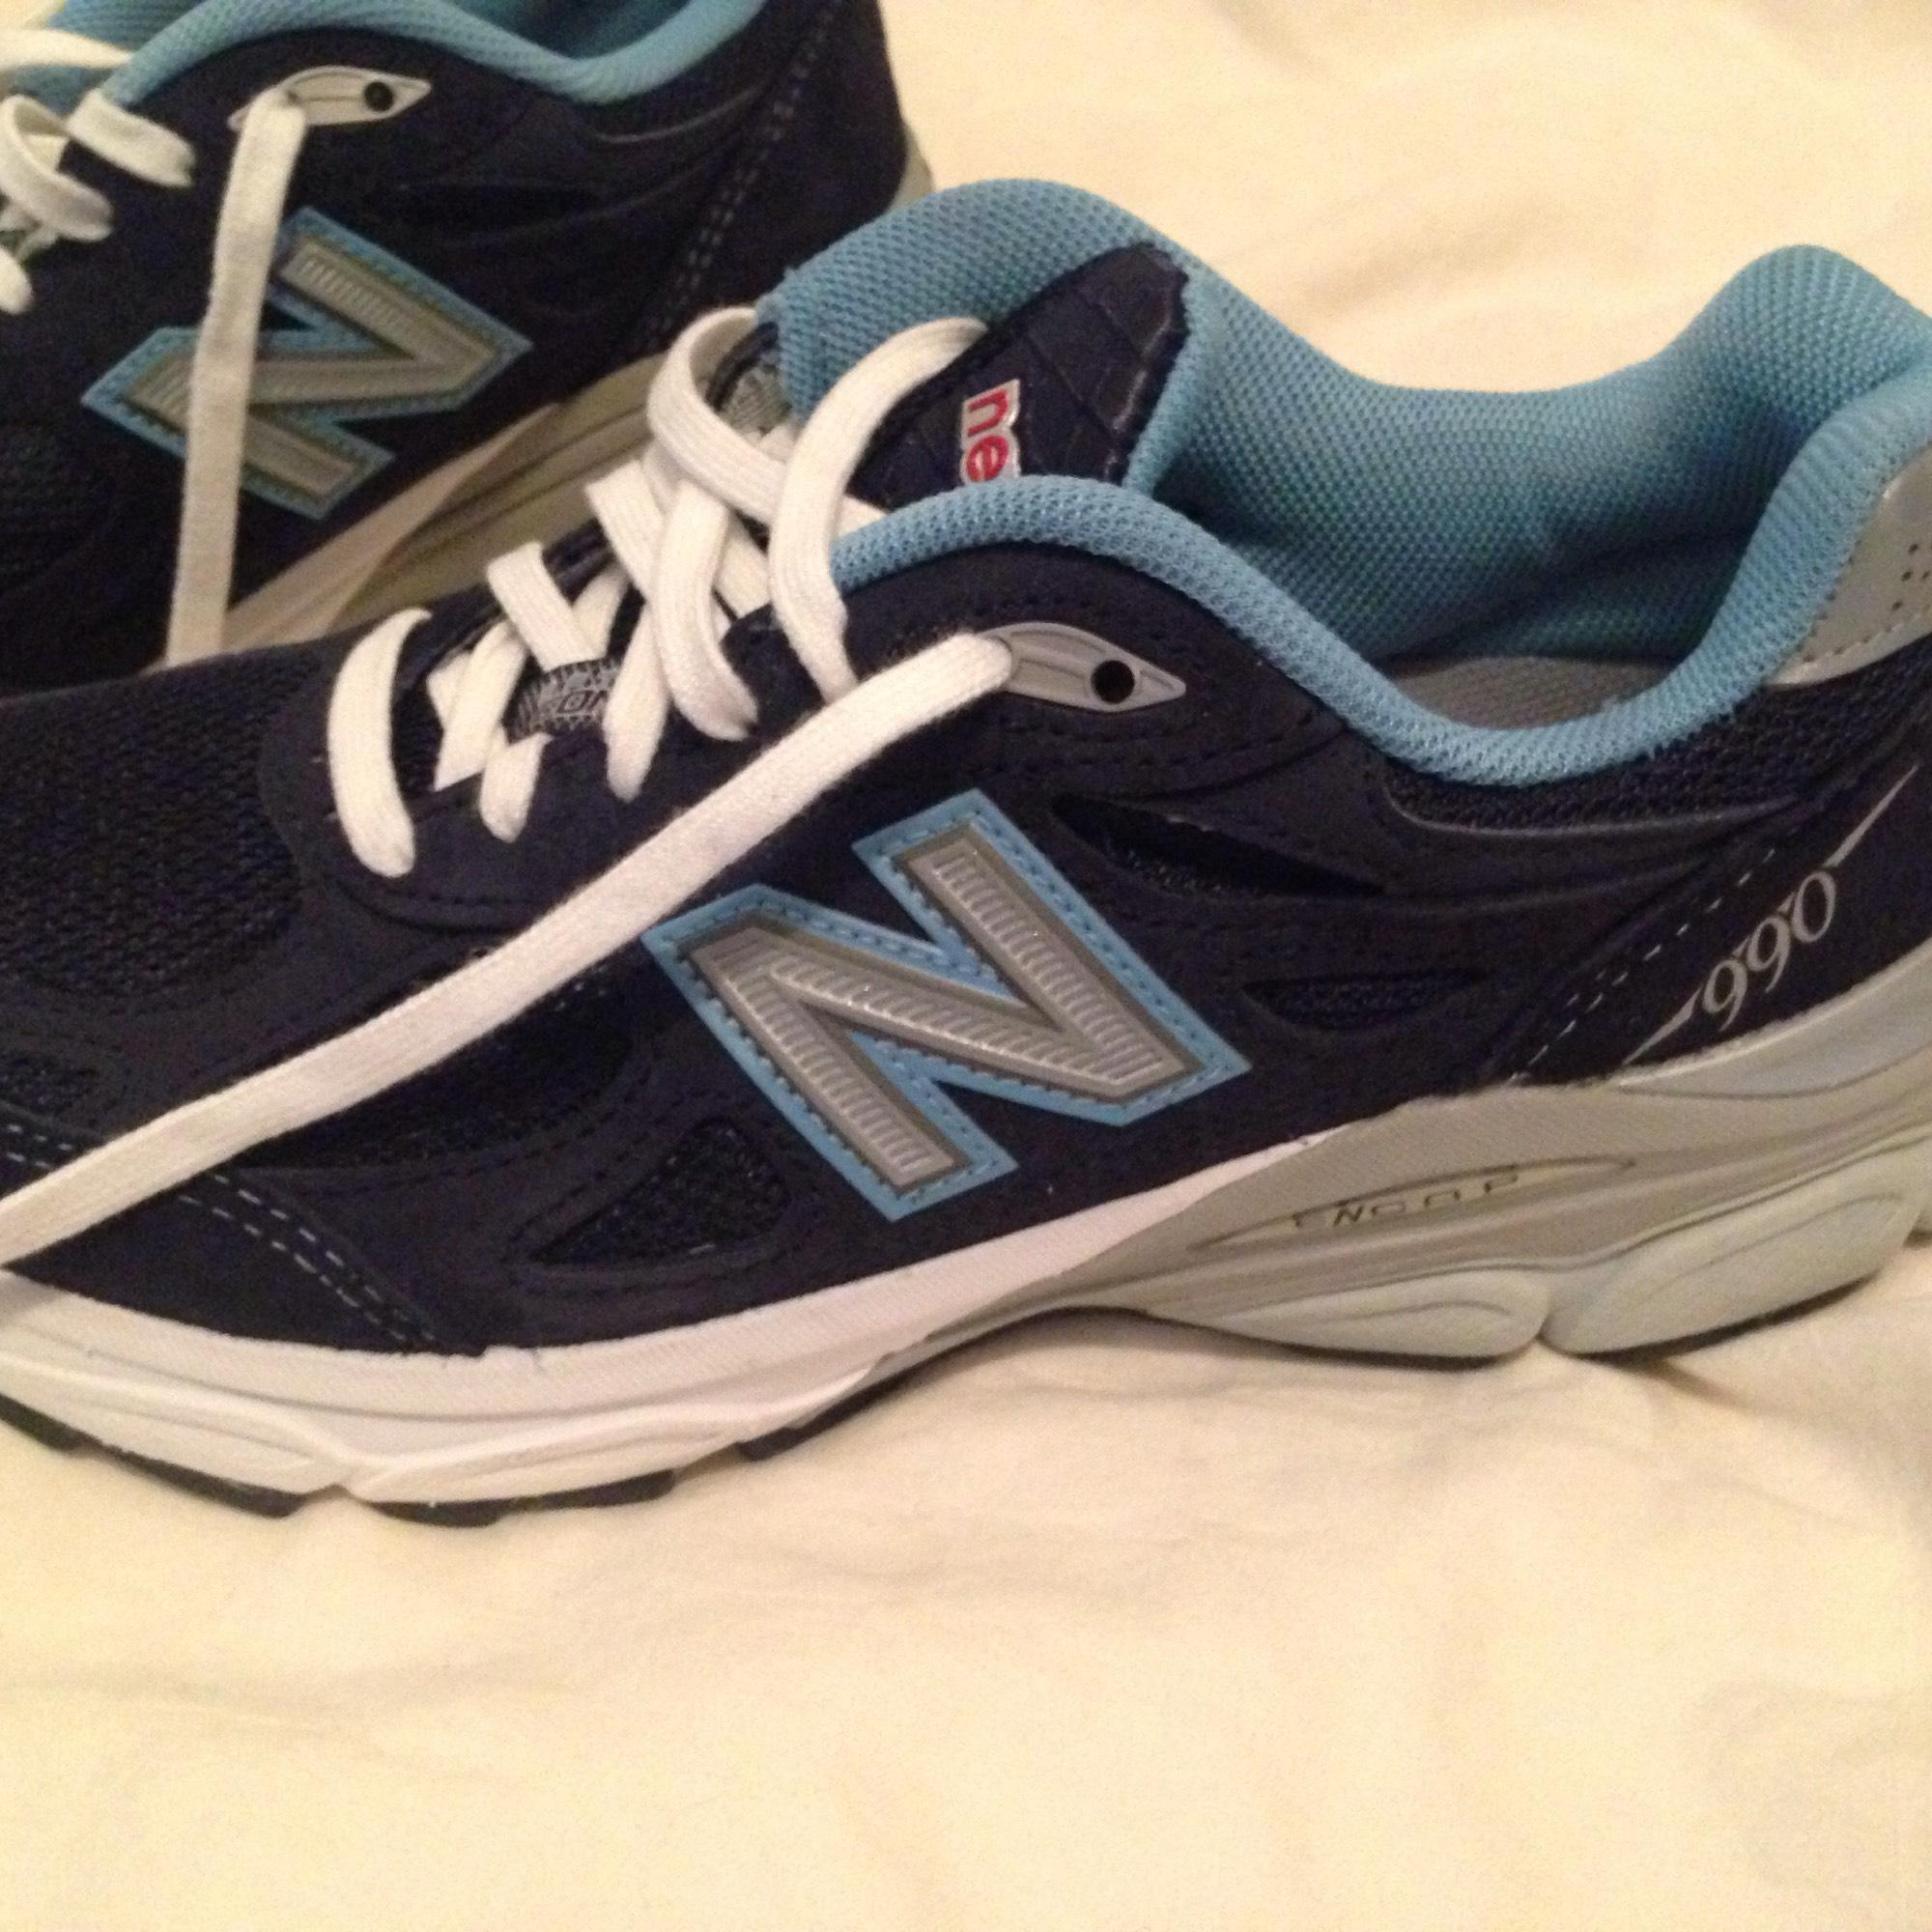 low priced 1dd72 e47d4 ... switzerland new balance dark blue sky blue grey white athletic. 1234567  e6e55 2cbc0